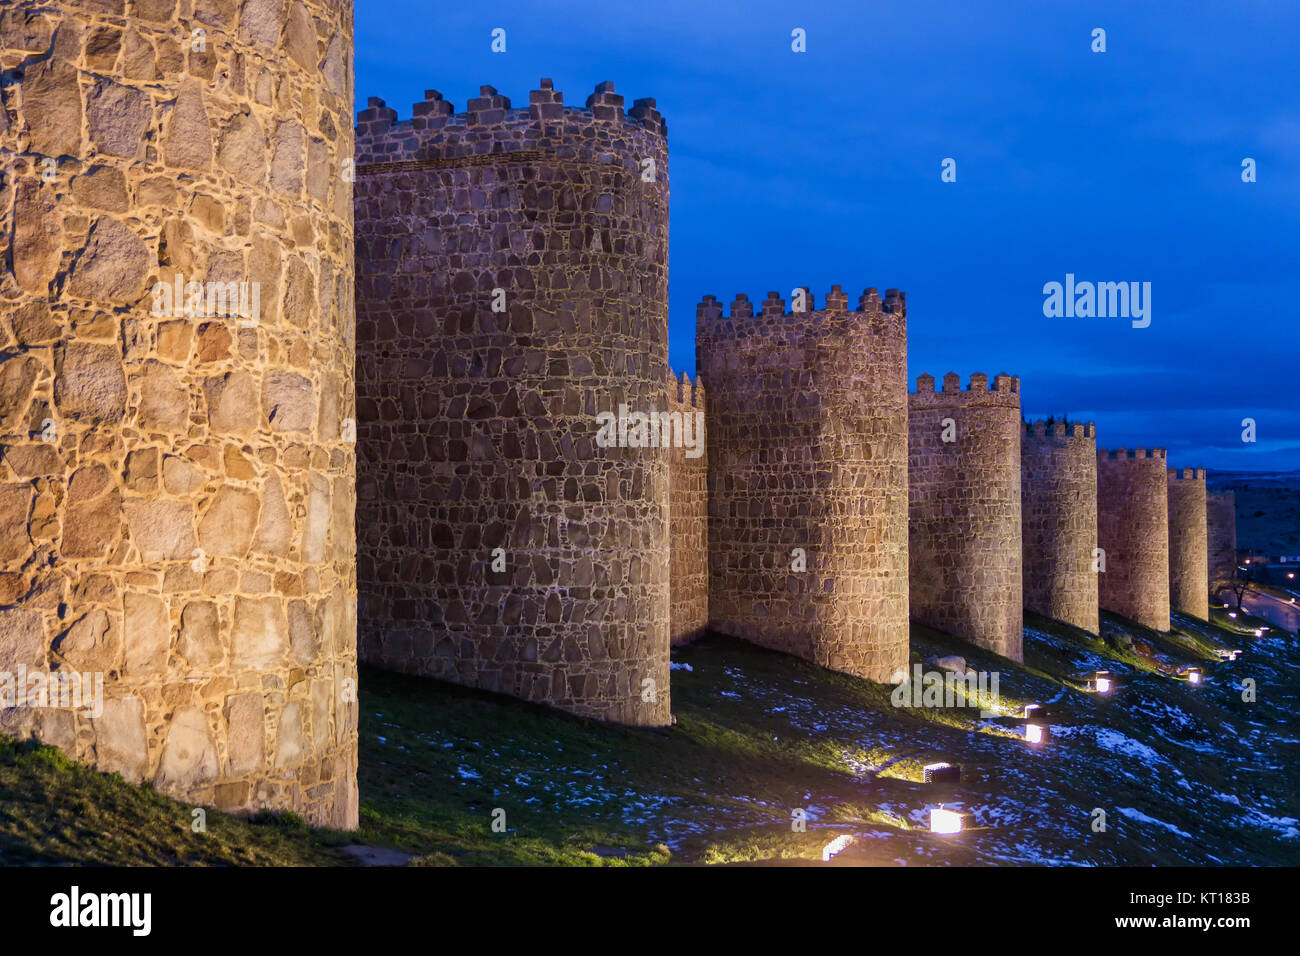 Ávila's 11th century city walls are the most important and best preserved of the Spanish medieval walls, - Stock Image